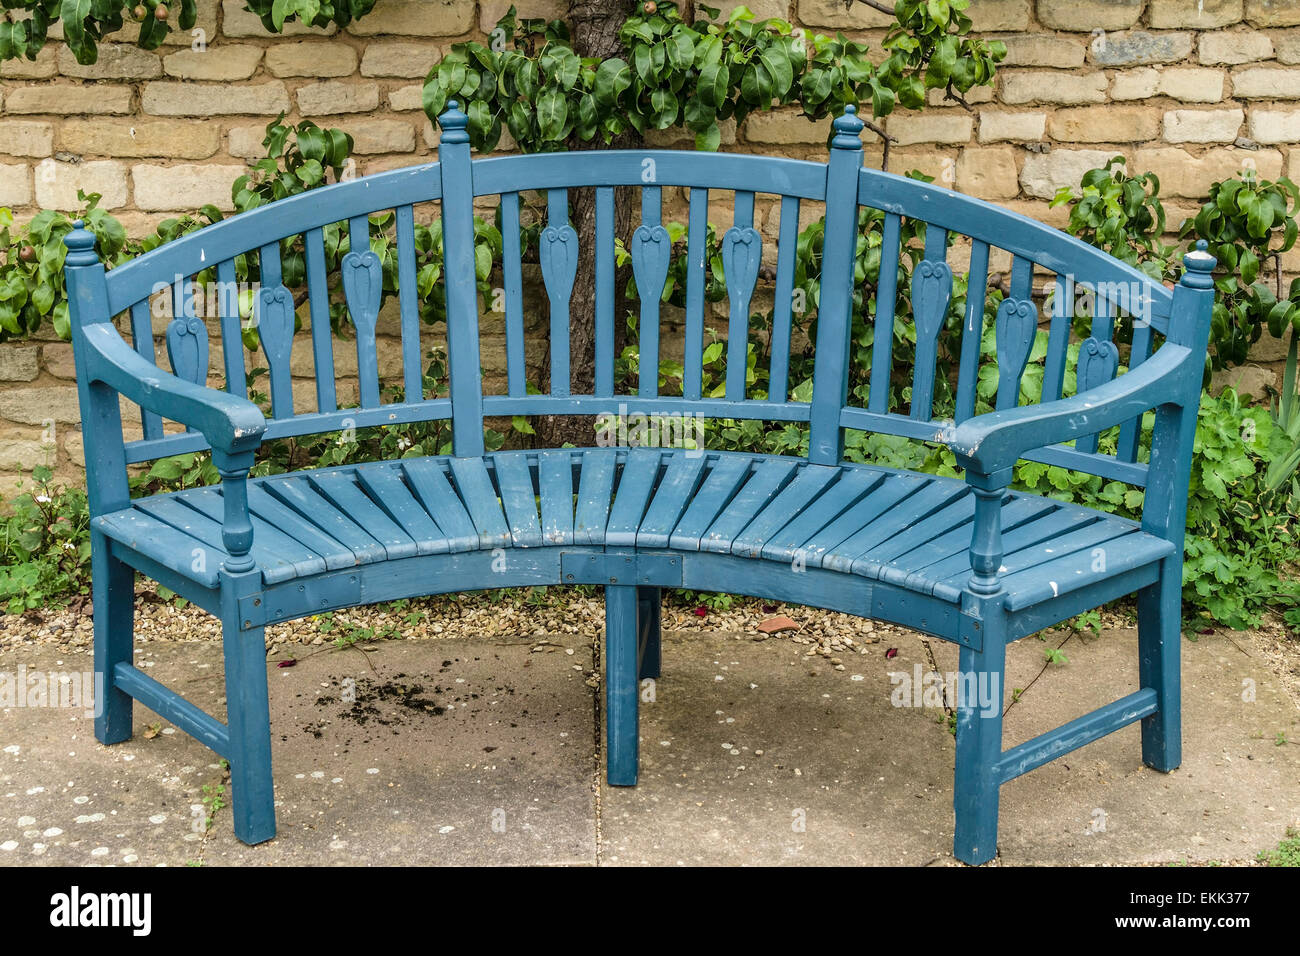 Blue Wooden Garden Bench Seat In Front Of Old Stone Wall